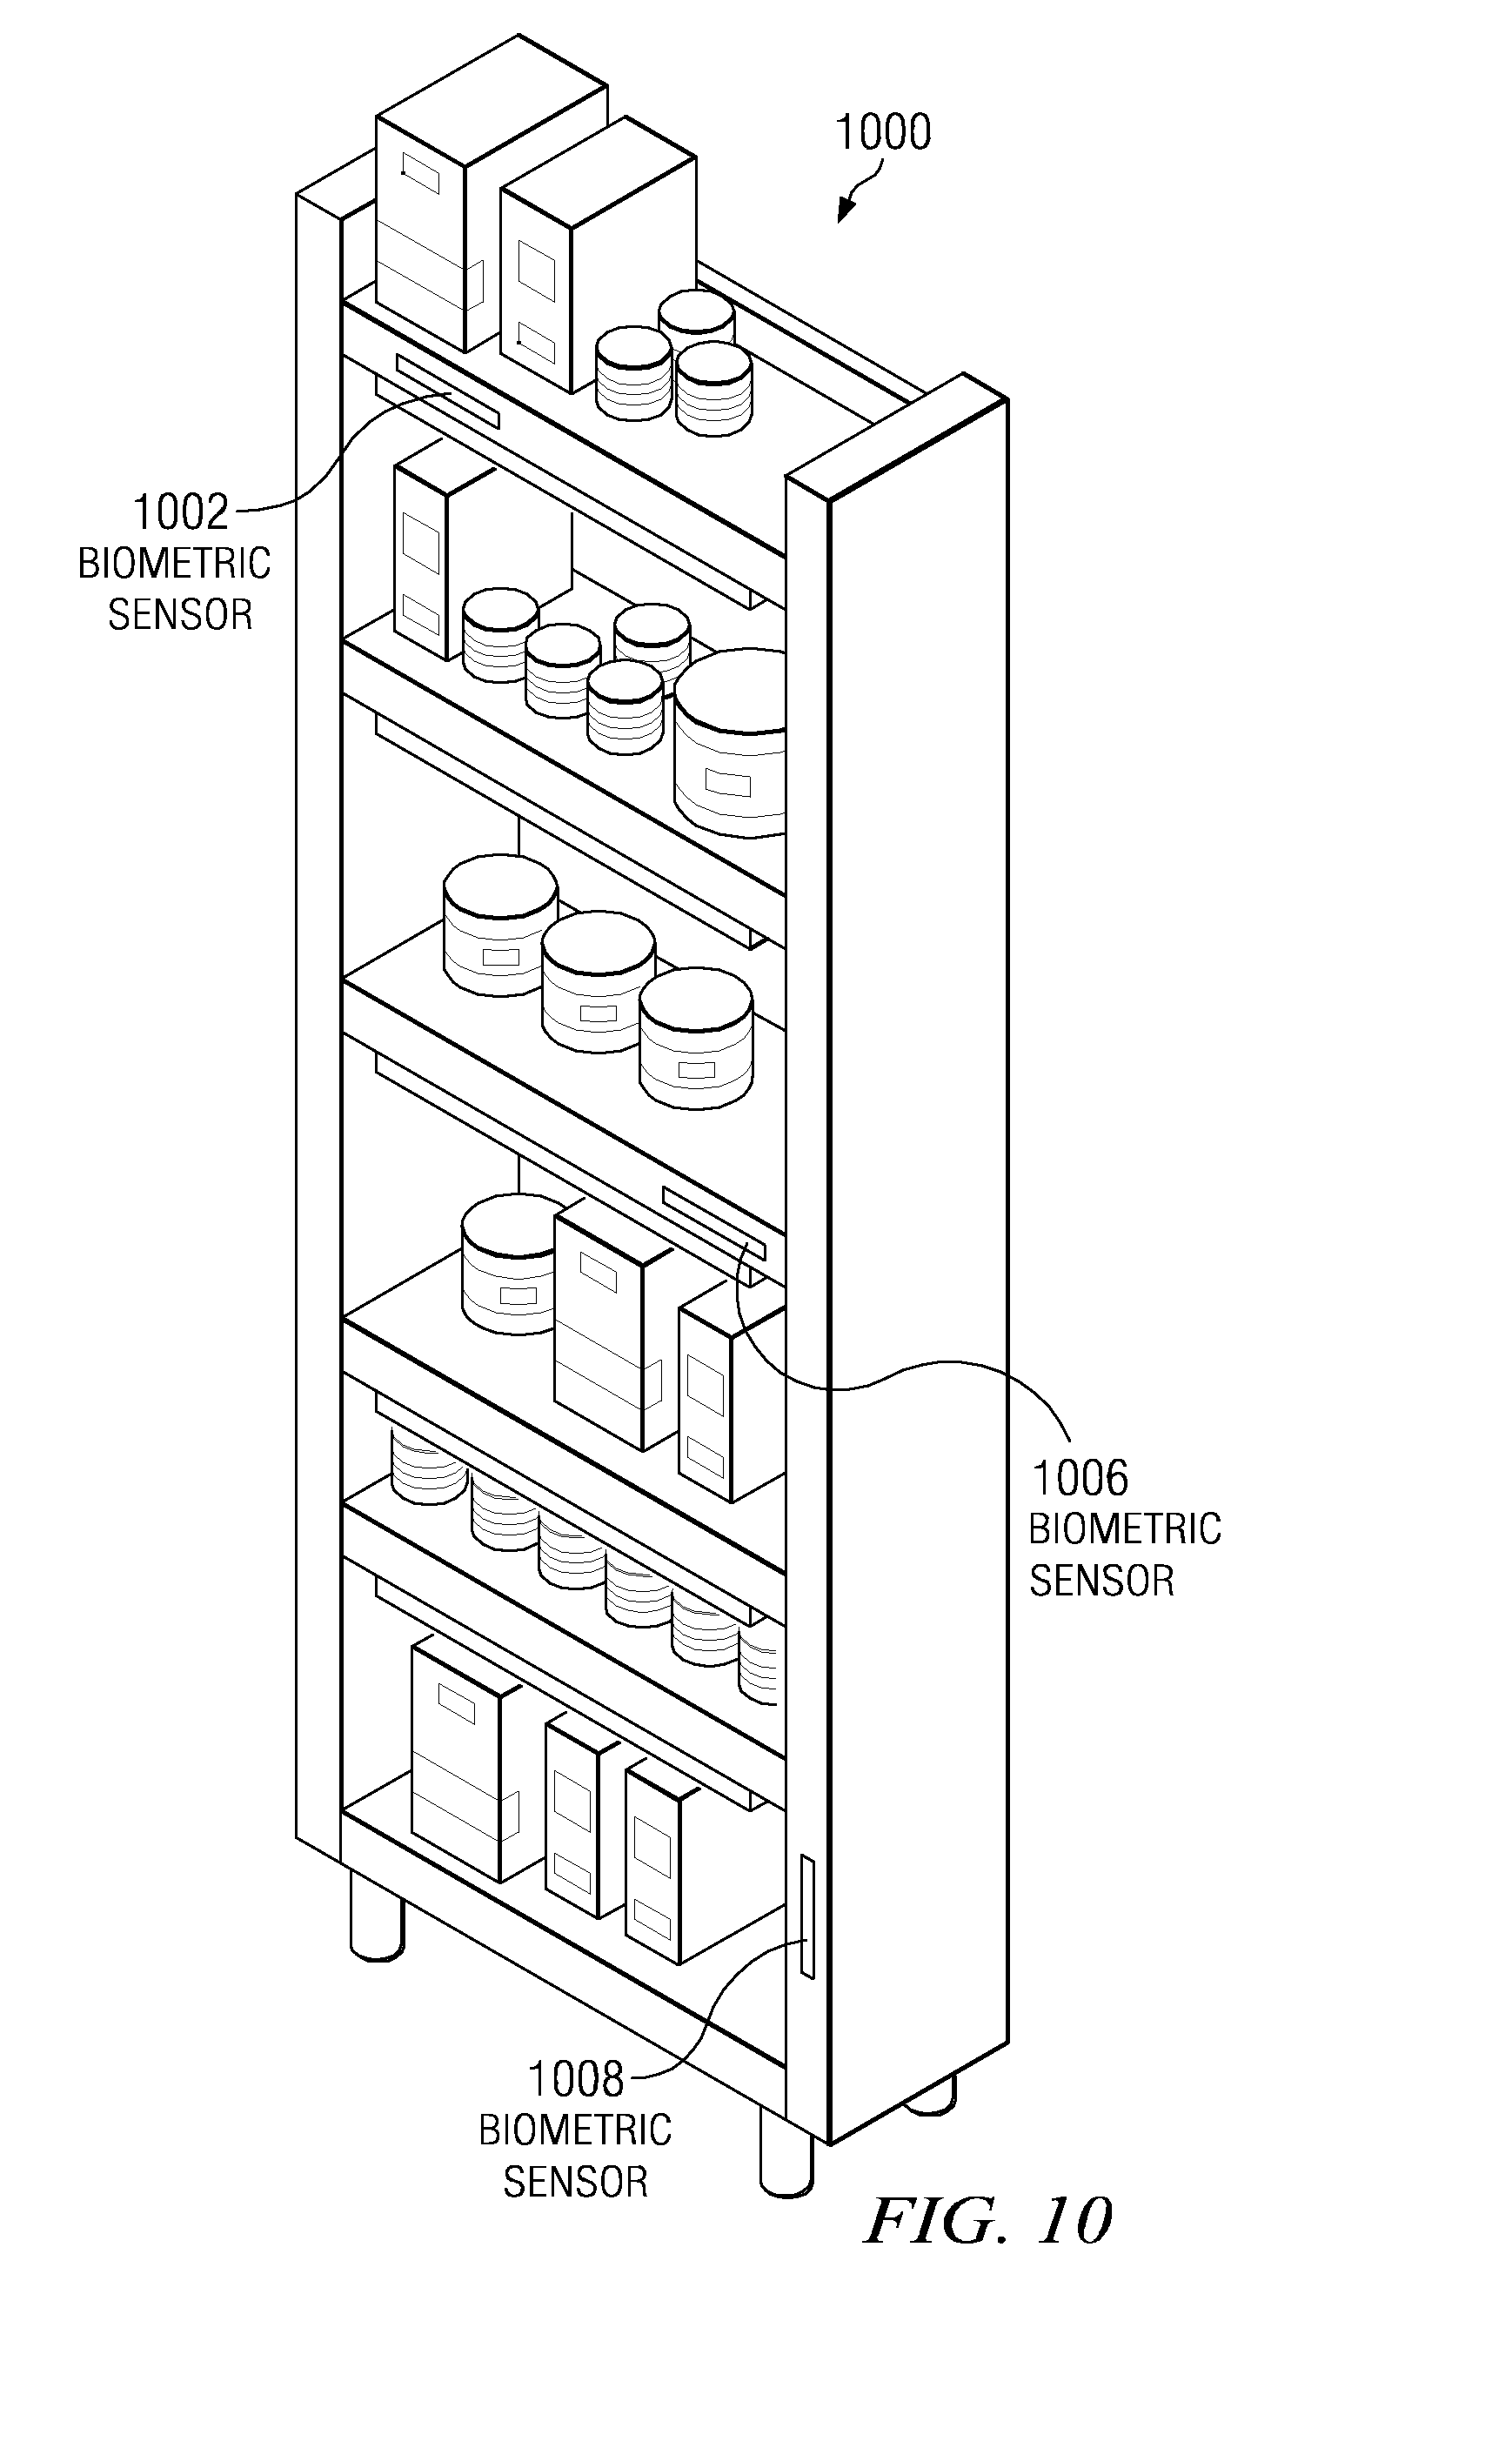 Patent US 20080249869A1 on